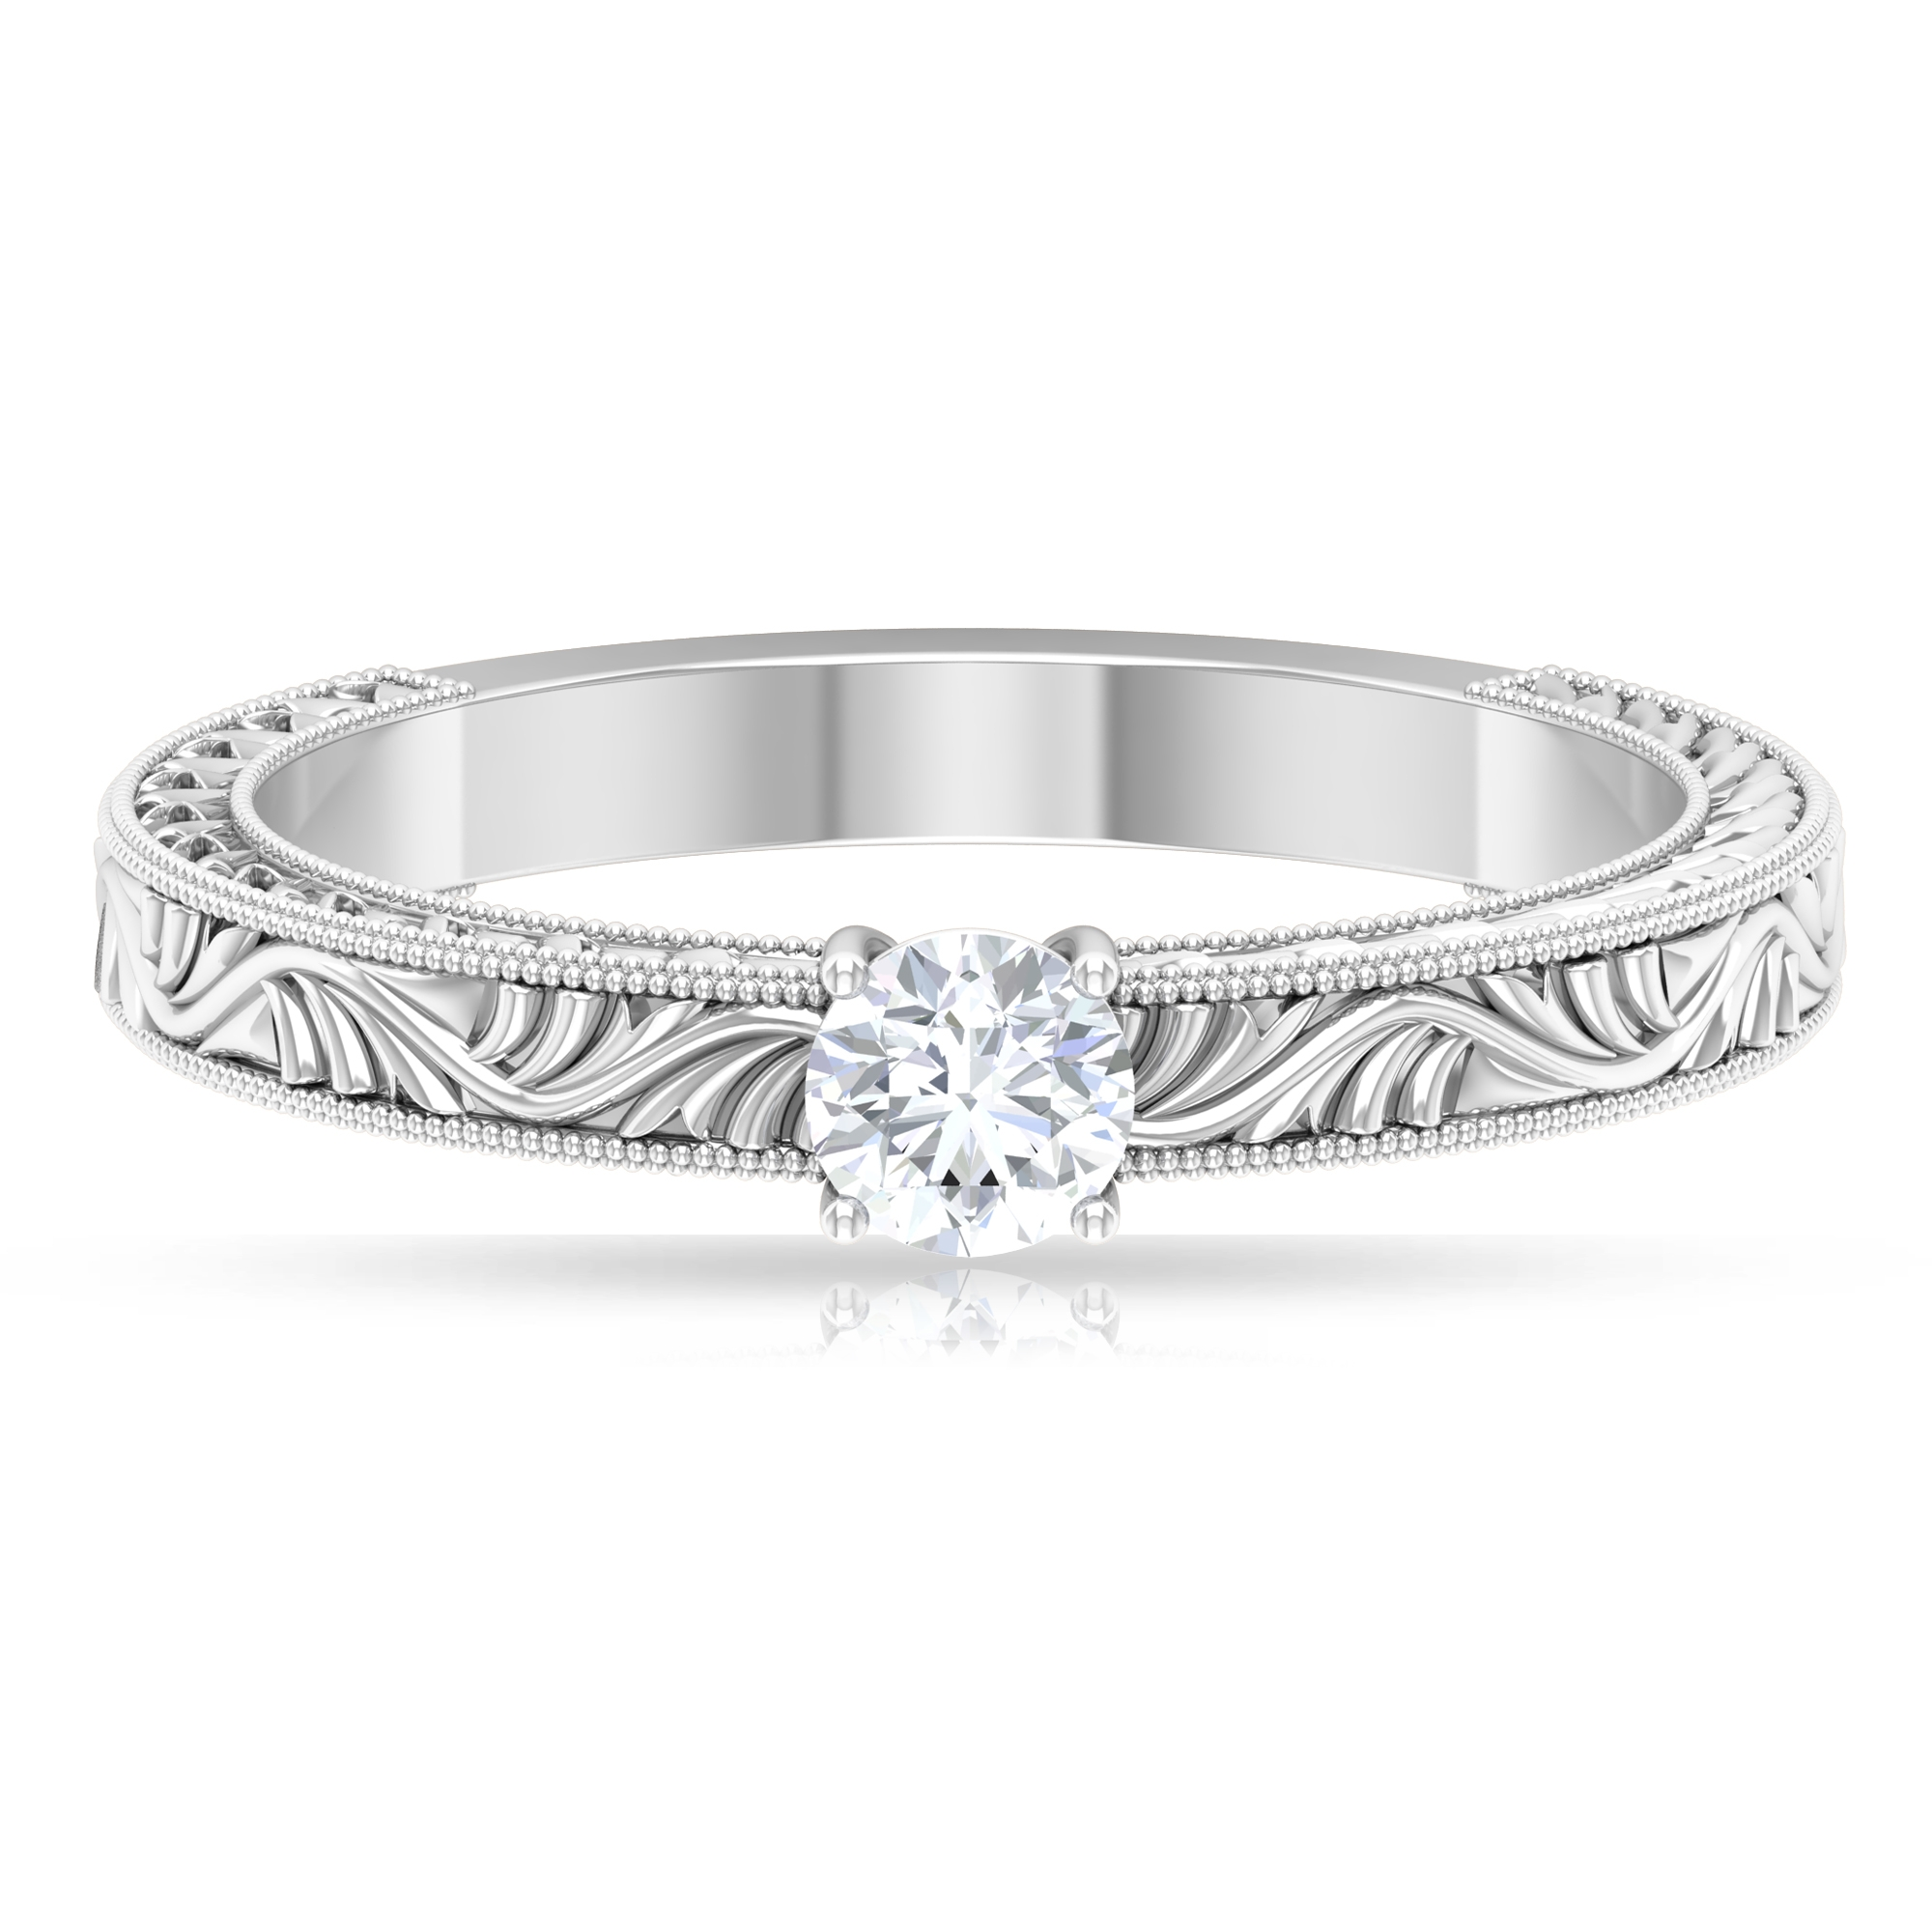 4 MM Round Cut Diamond Solitaire Ring in 4 Prong Setting with Engraved Details